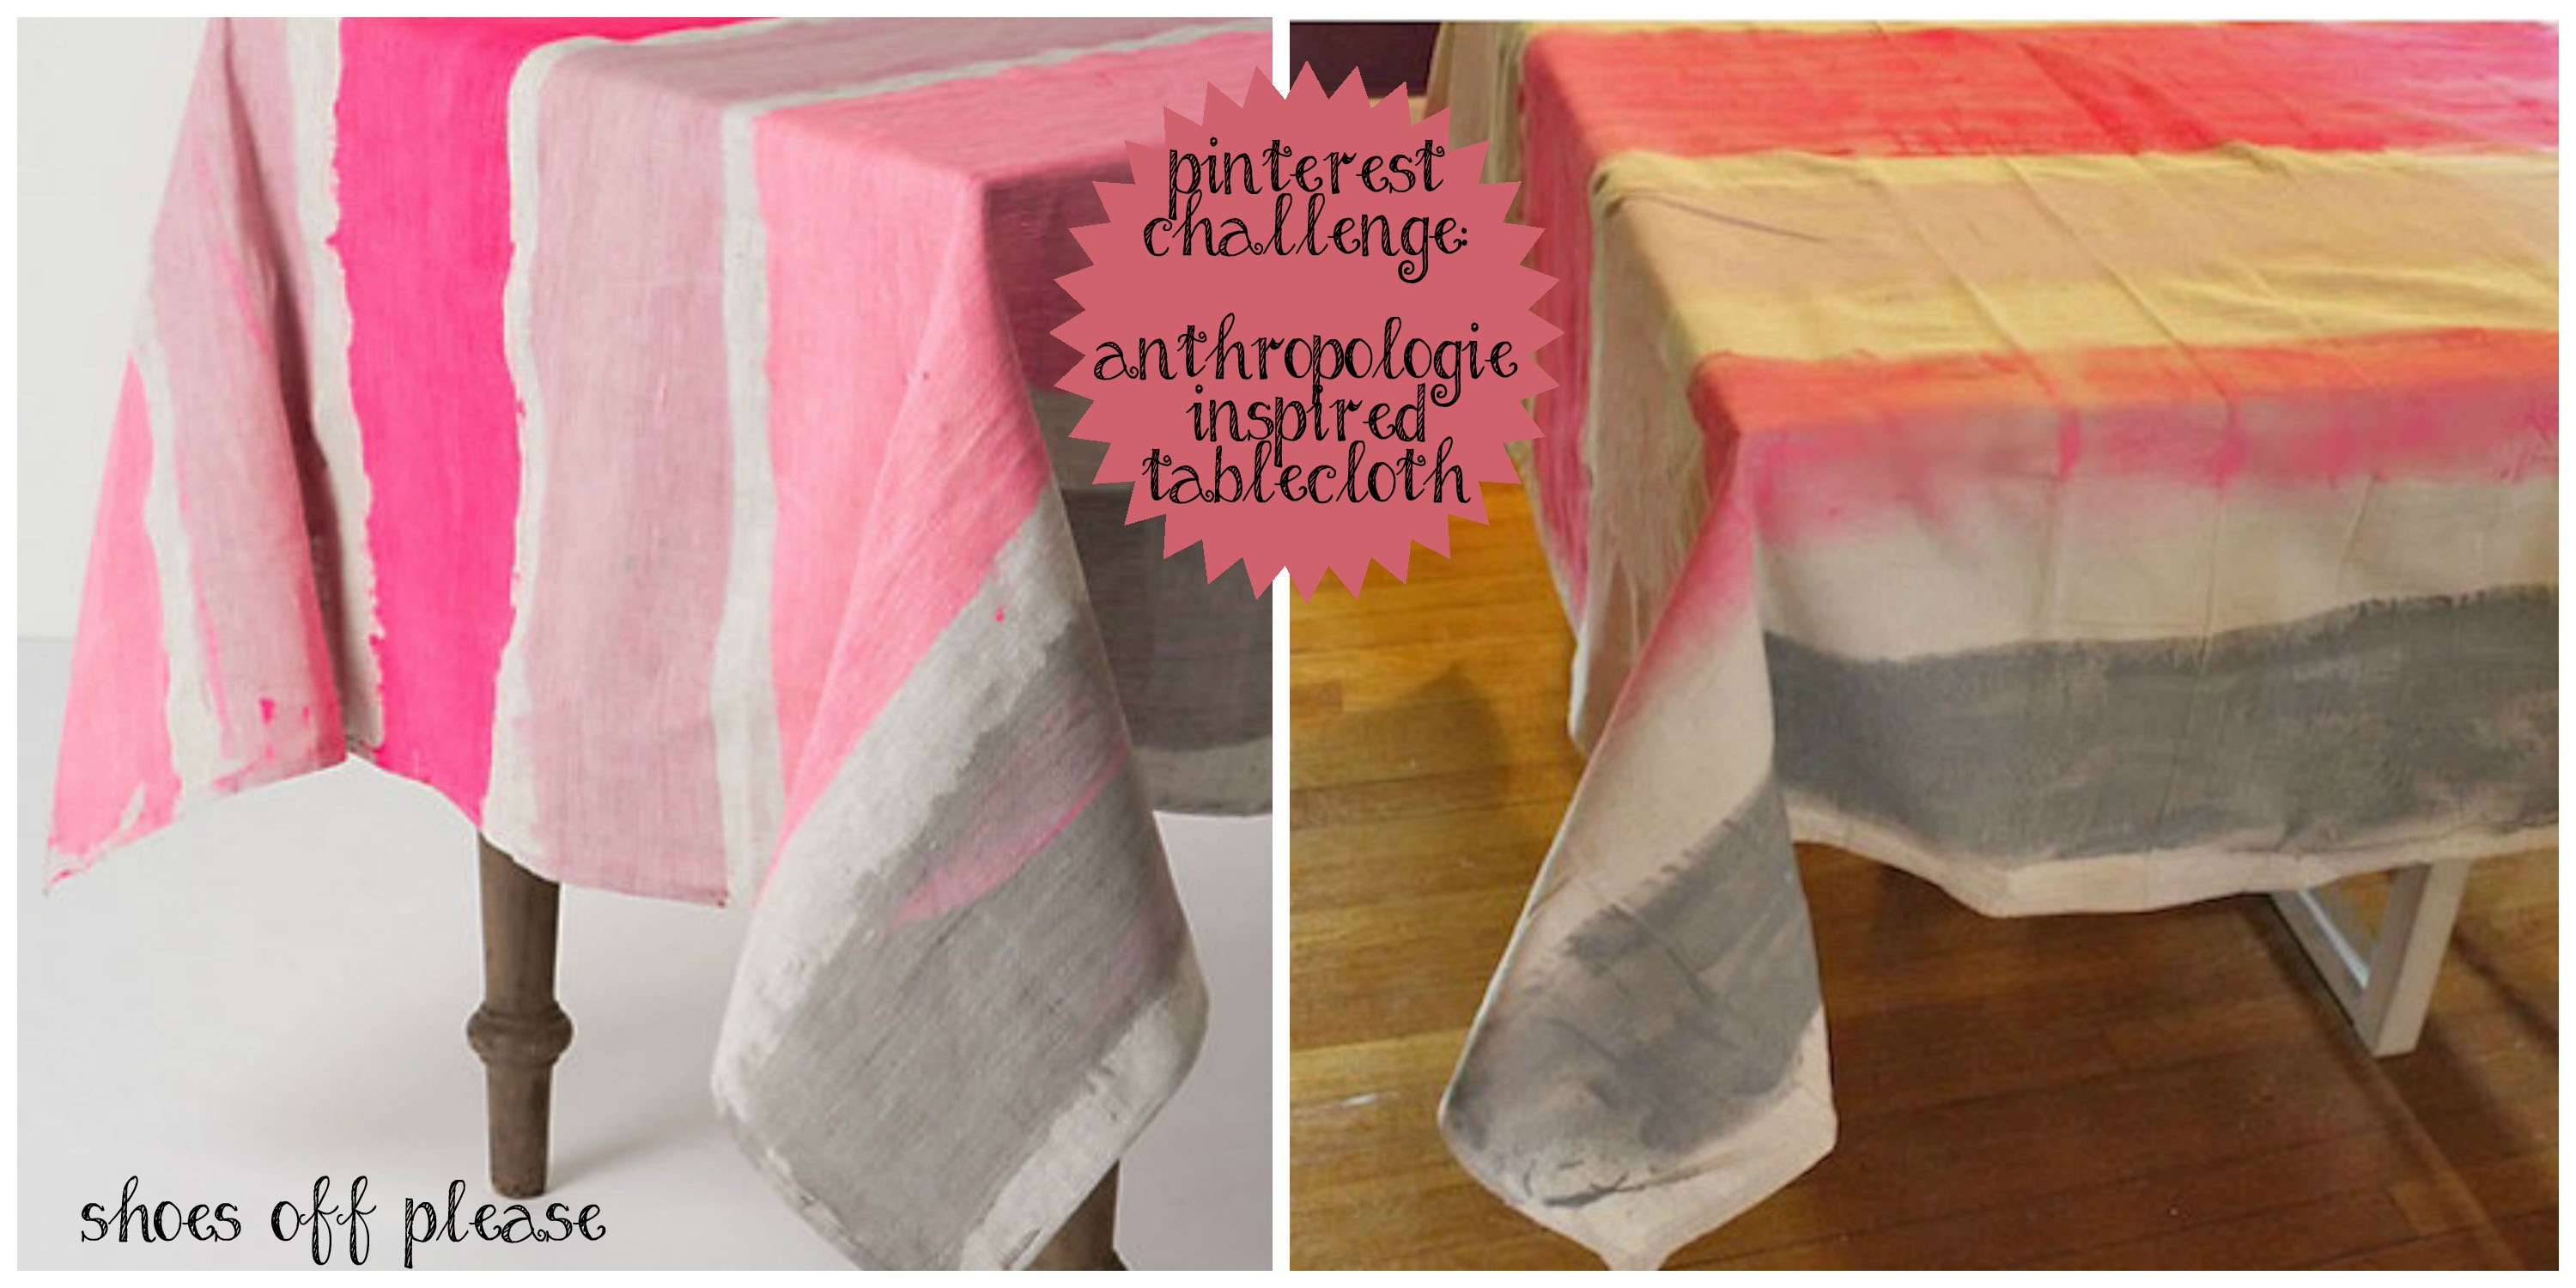 Pinterest Challenge DIY Anthropologie Tablecloth Shoes Off Please